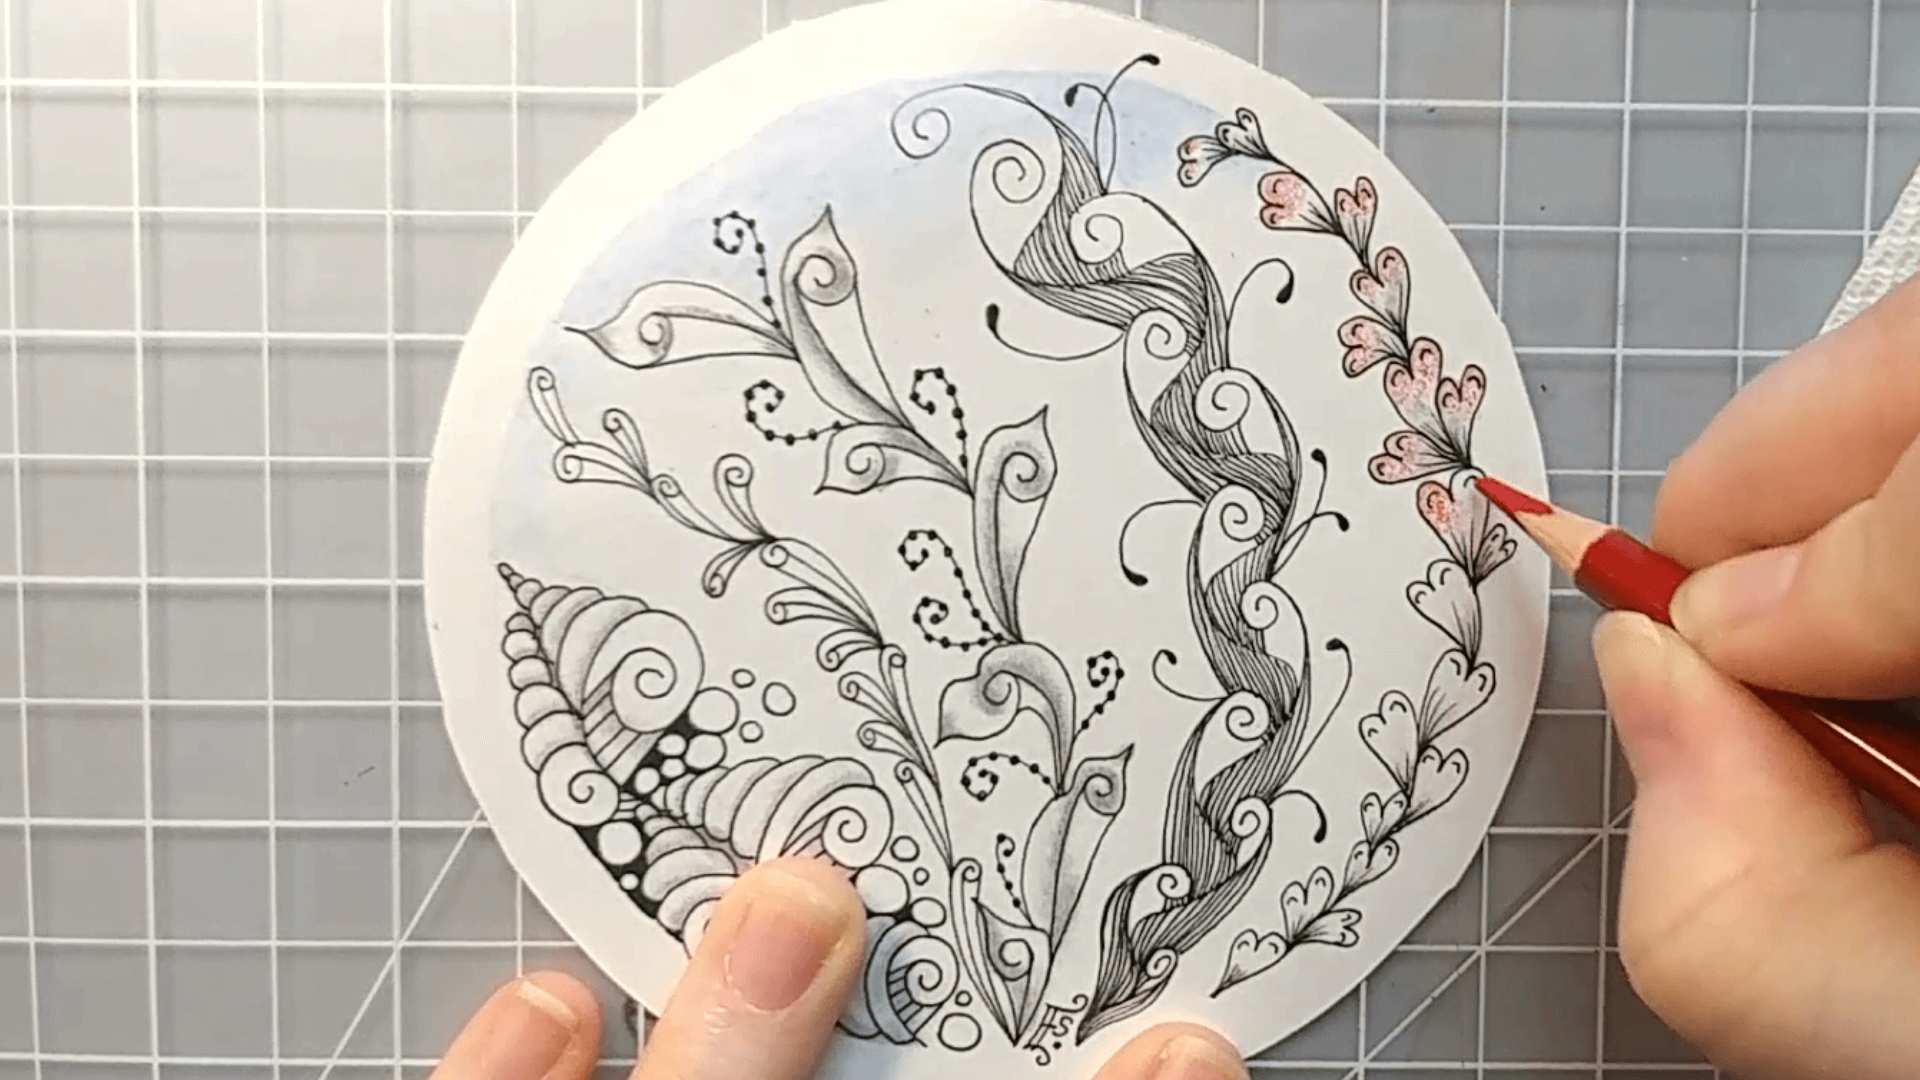 Zentangle inspired art tutorial using patterns with a swirl theme being hand drawn and colored with watercolor pencils